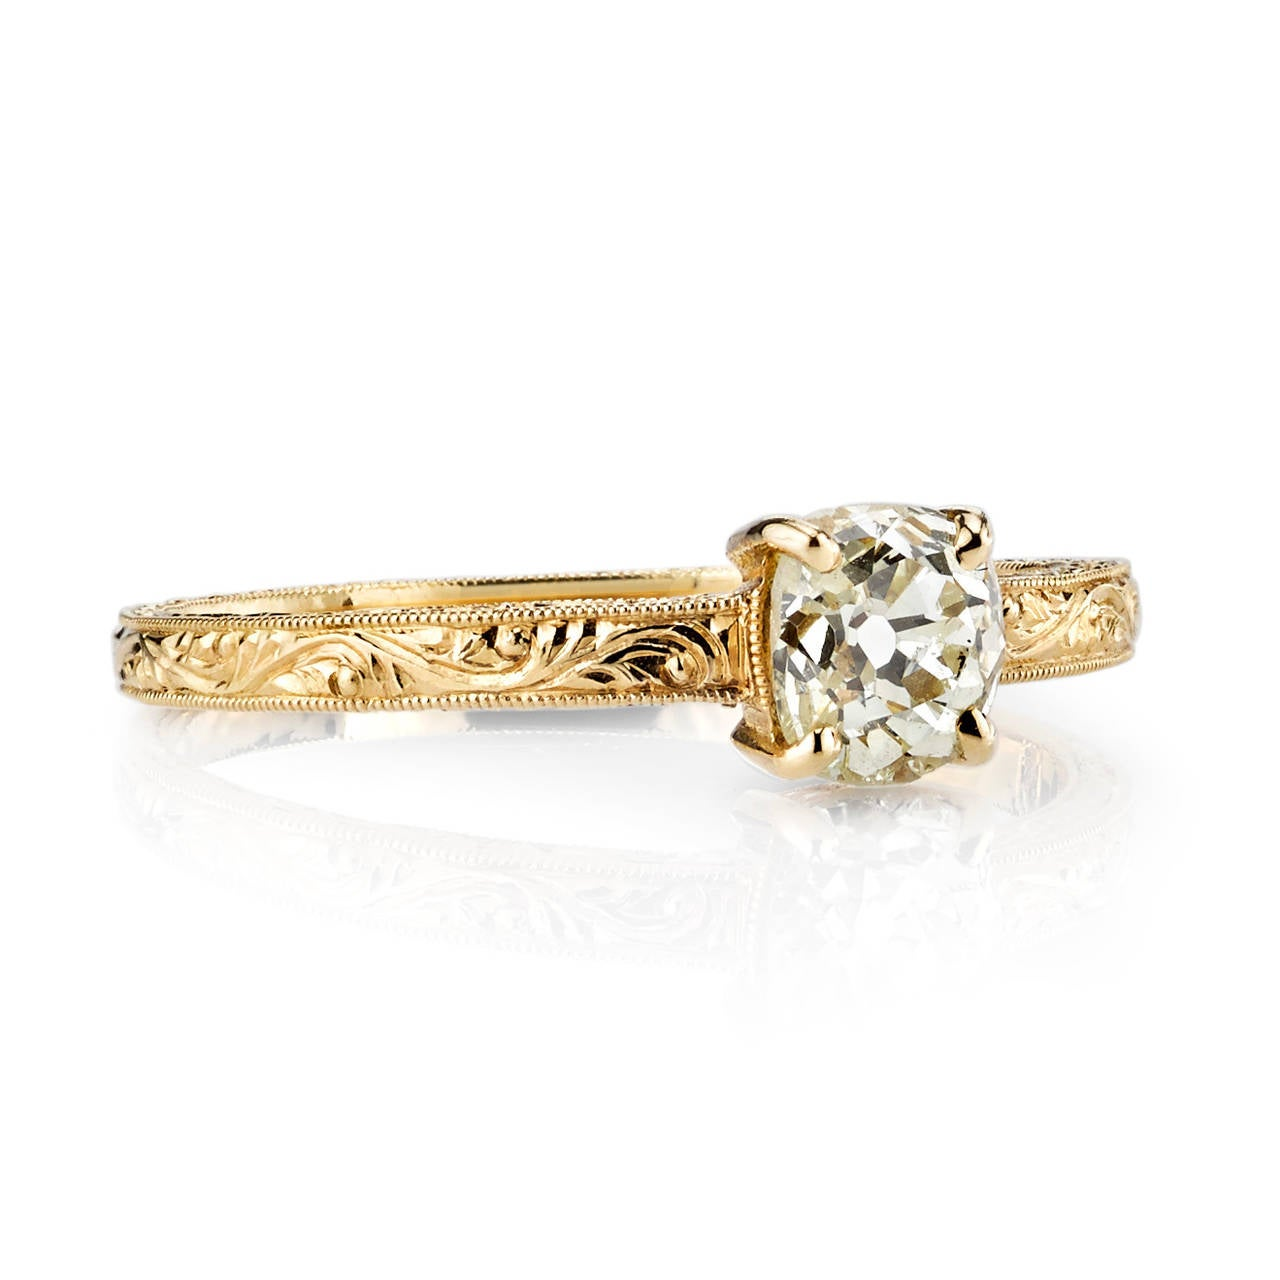 Edwardian Style Cushion Cut Diamond Engagement Ring For Sale at 1stdibs